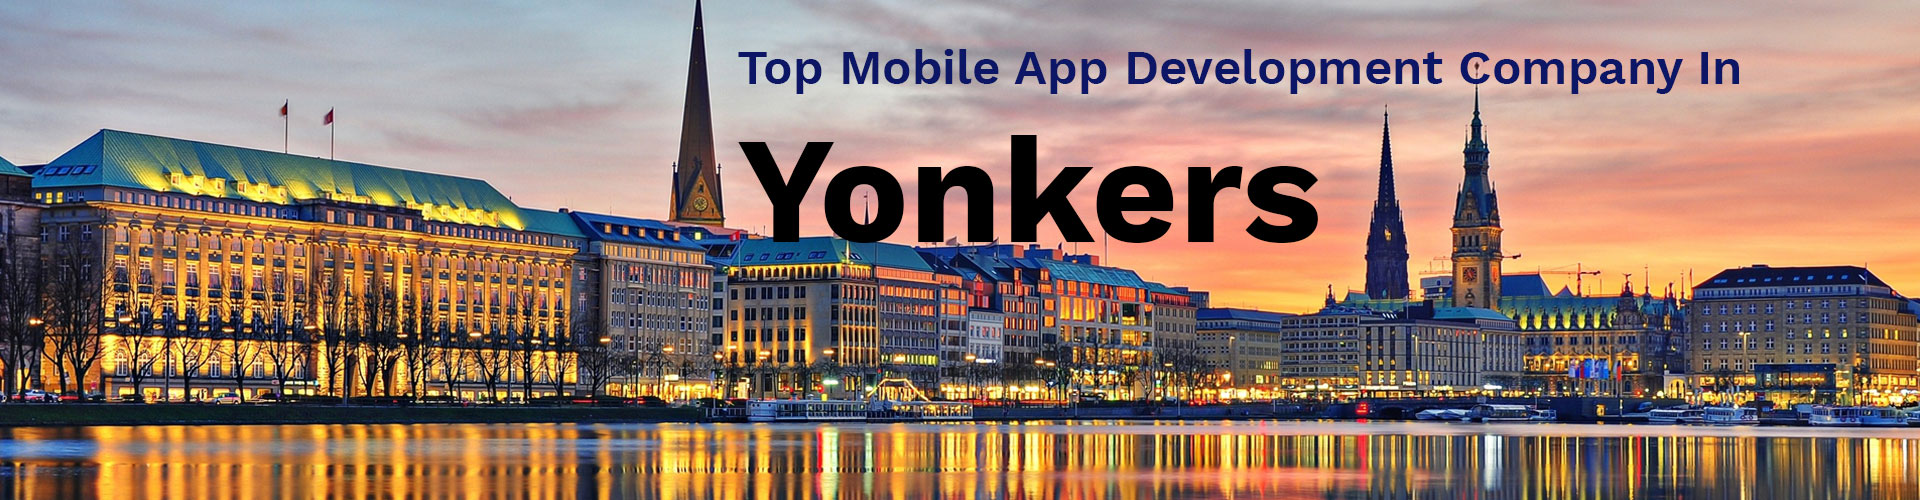 mobile app development company yonkers